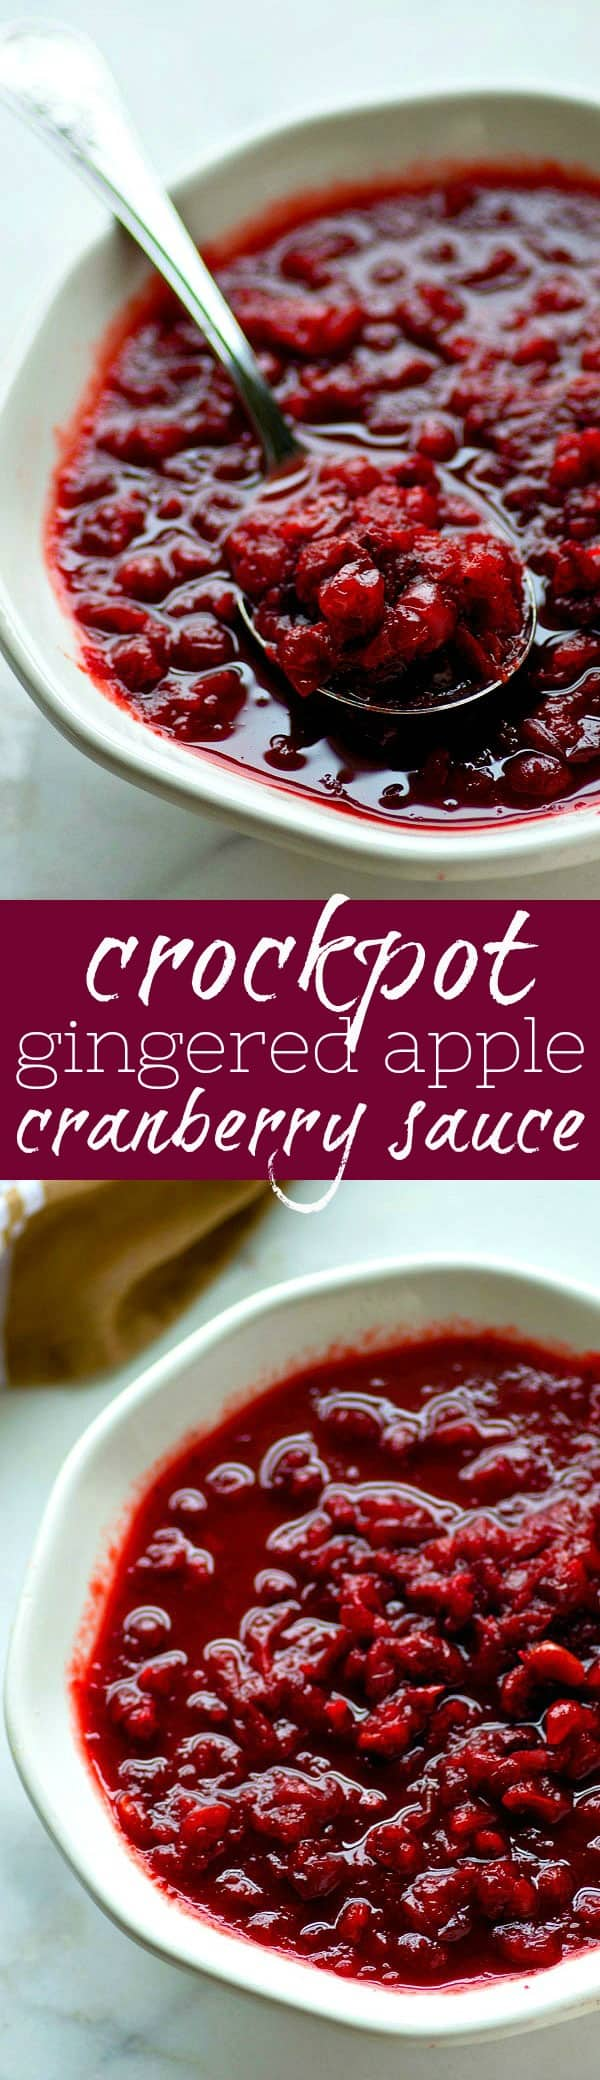 Make your cranberry sauce this Thanksgiving the easy way! This gingered apple cranberry sauce makes itself entirely in the crockpot and it's packed with sweet 'n' spicy ginger flavors.